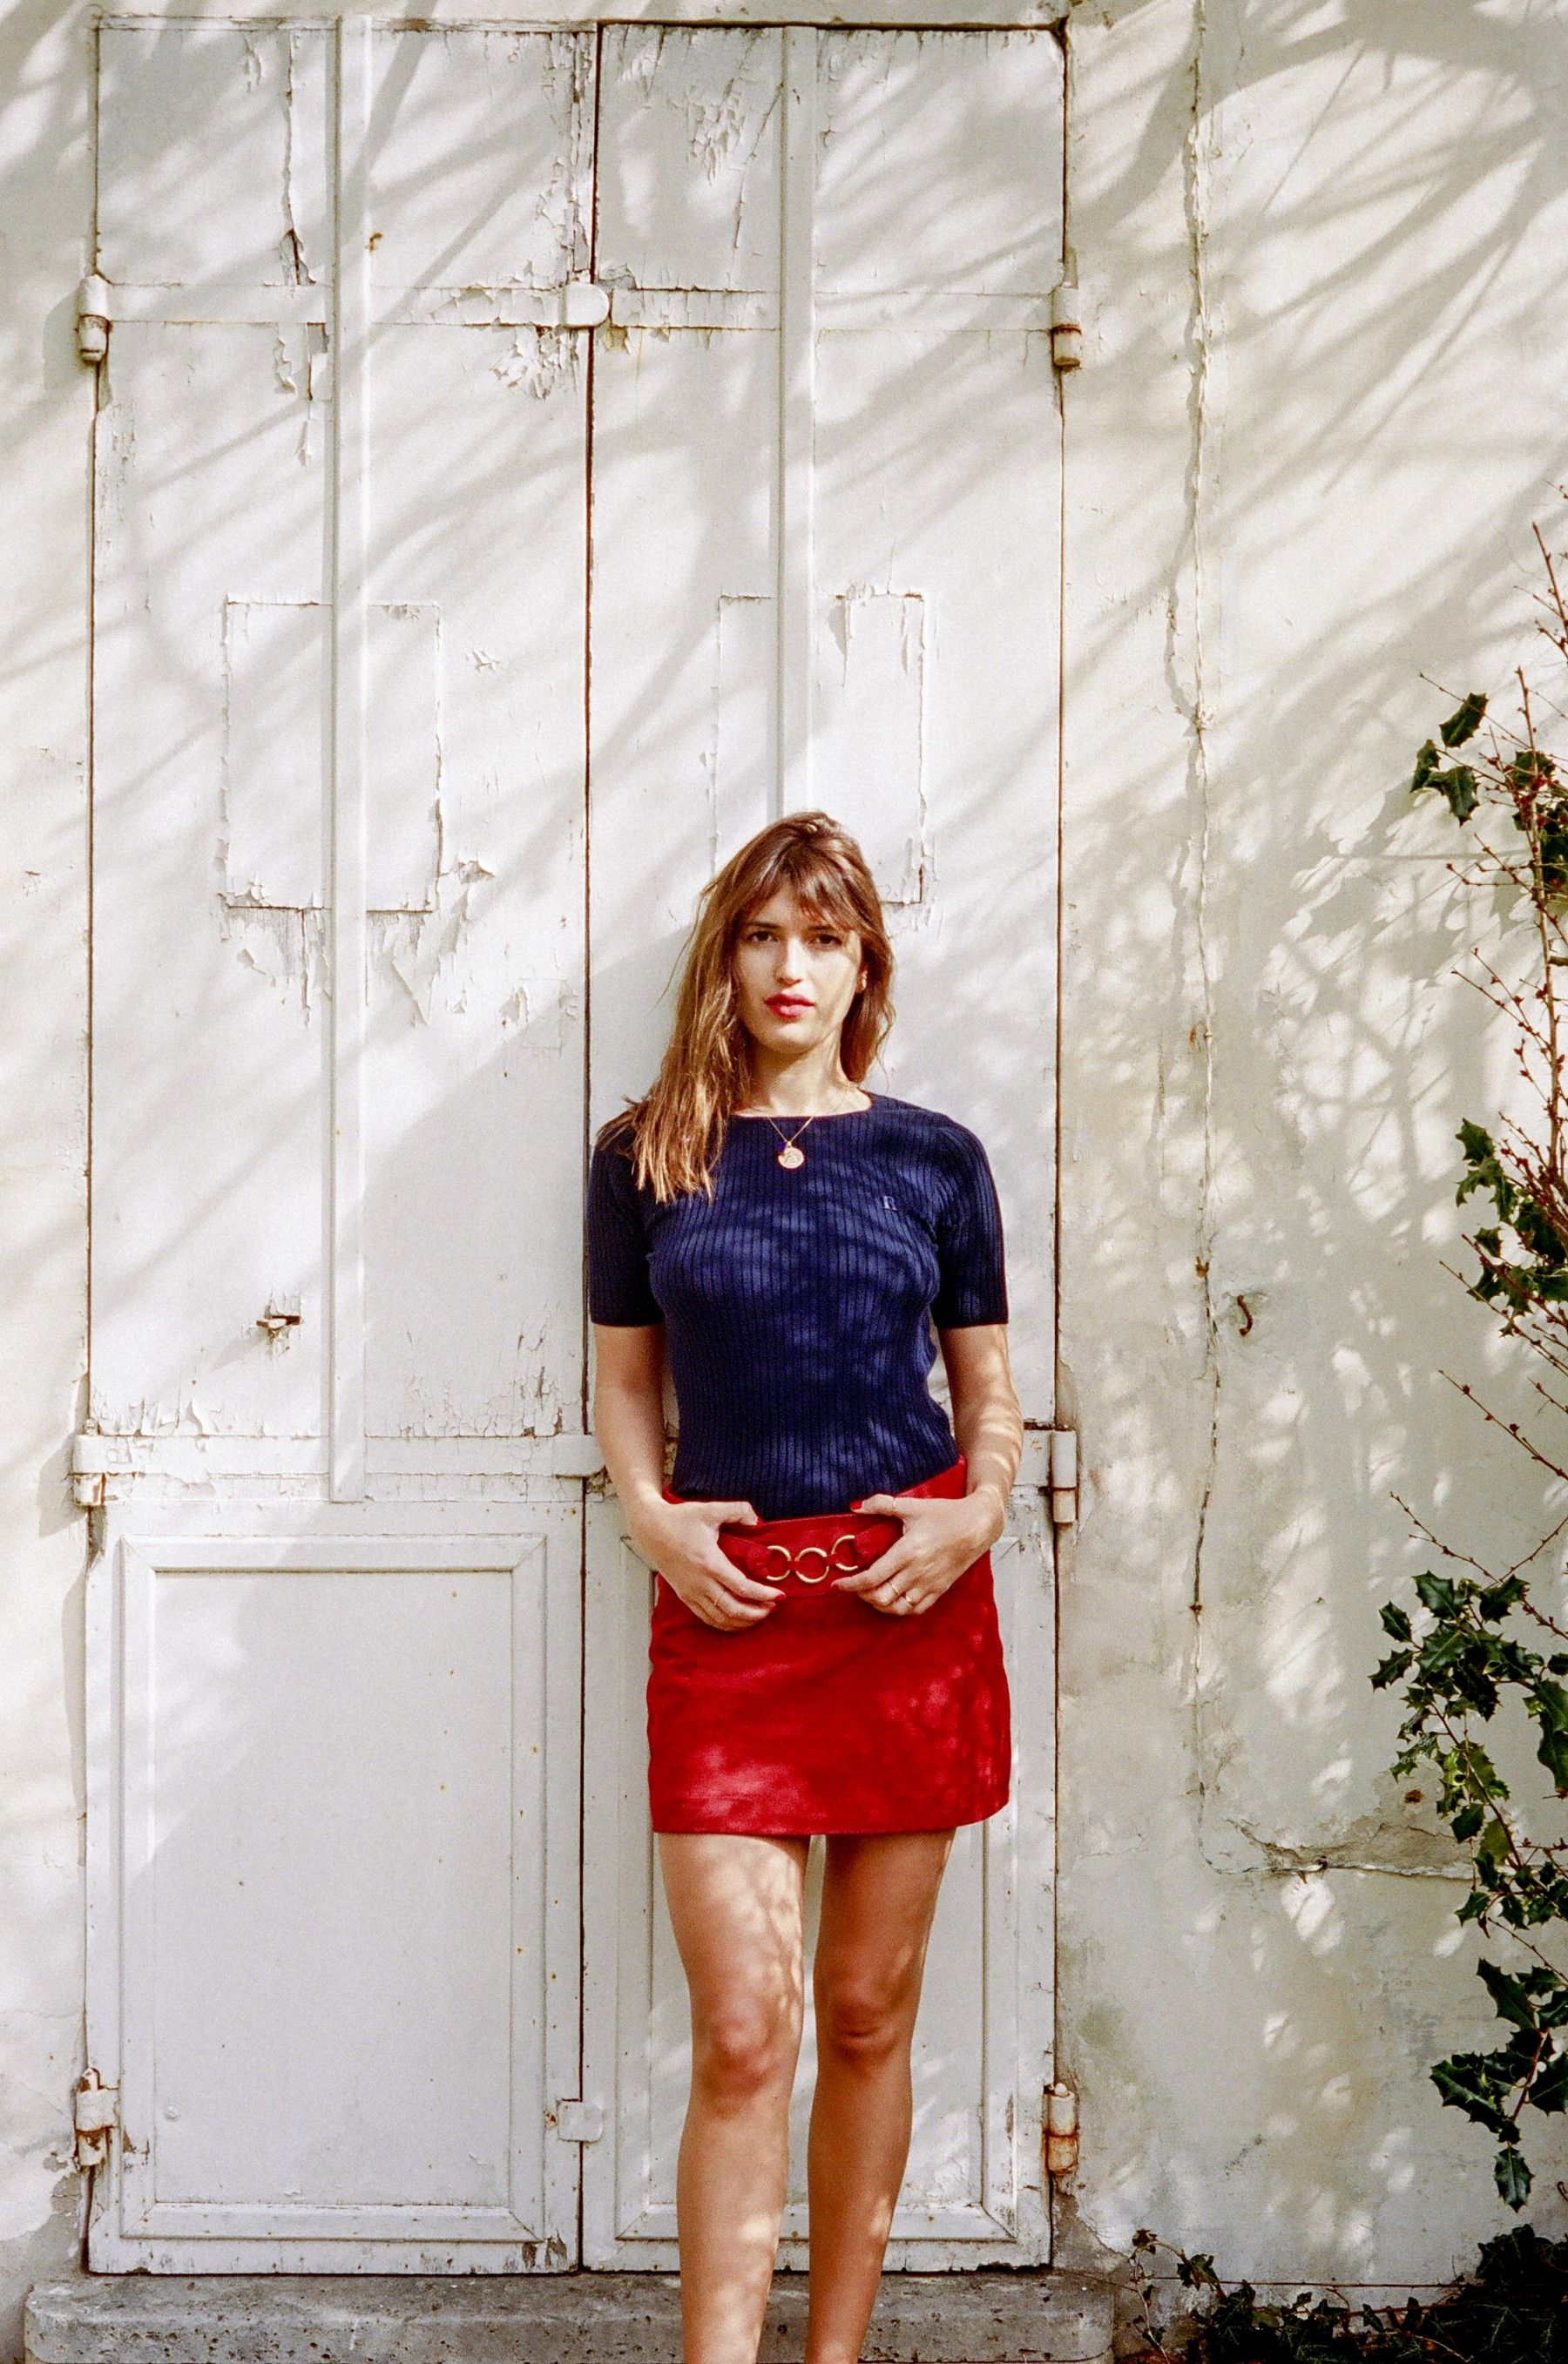 1d058a00ec Rouje - true french girl style. red skirt and navy top